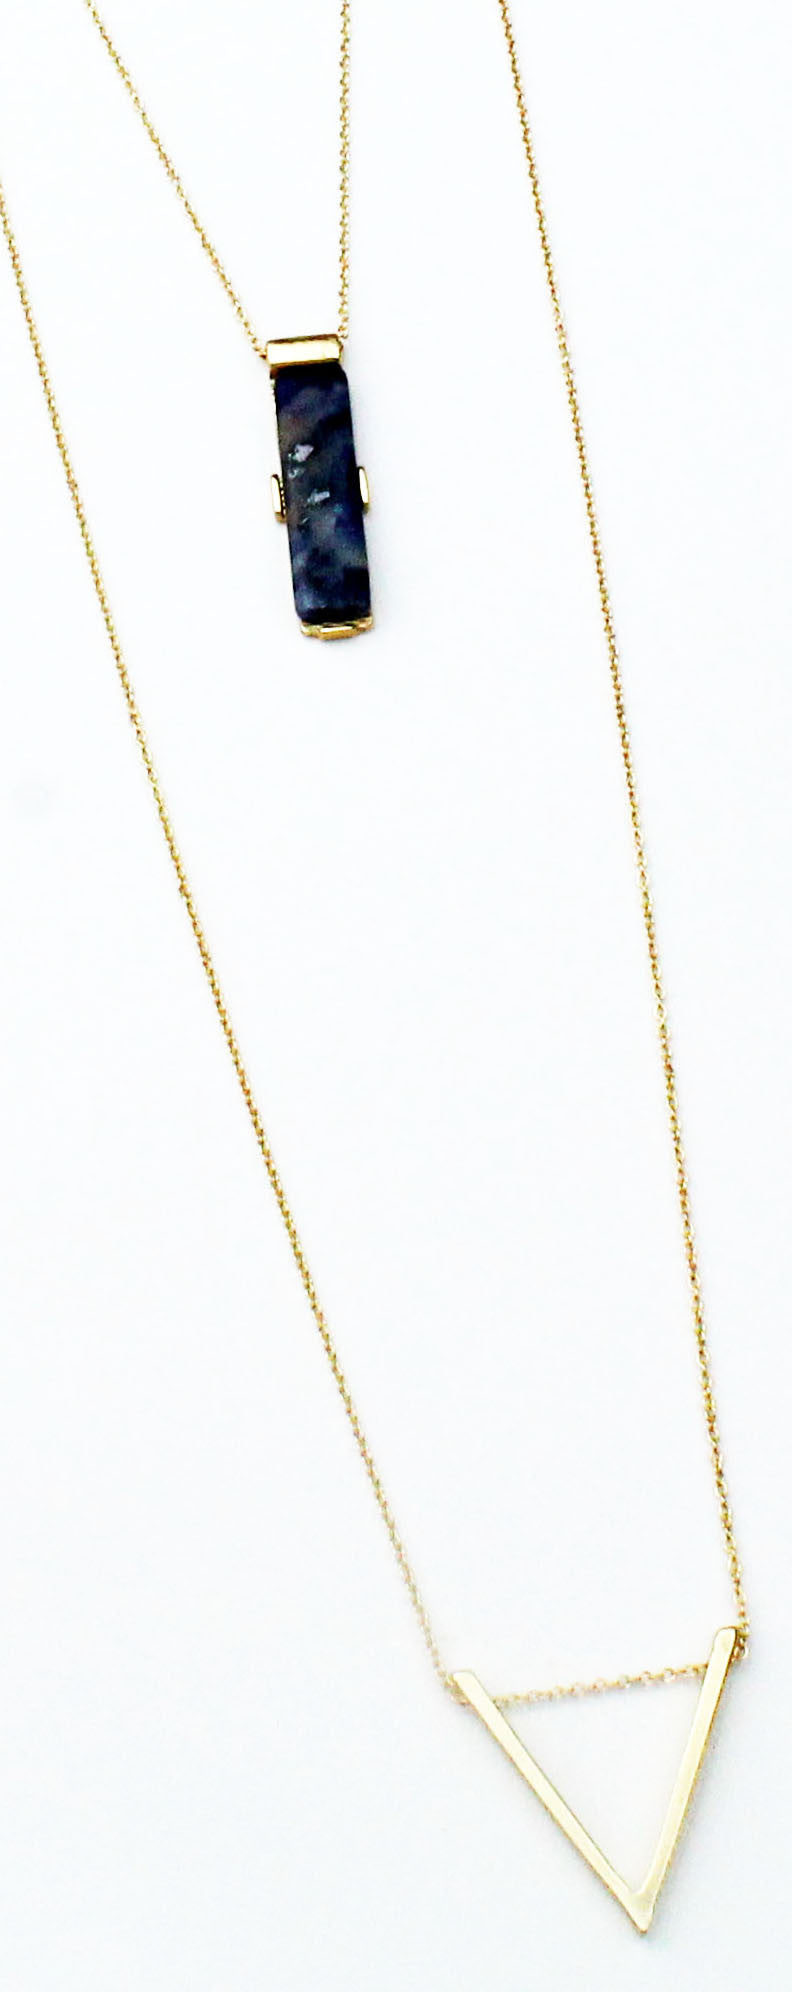 Sleek Peek Gold & Navy Layered Necklace